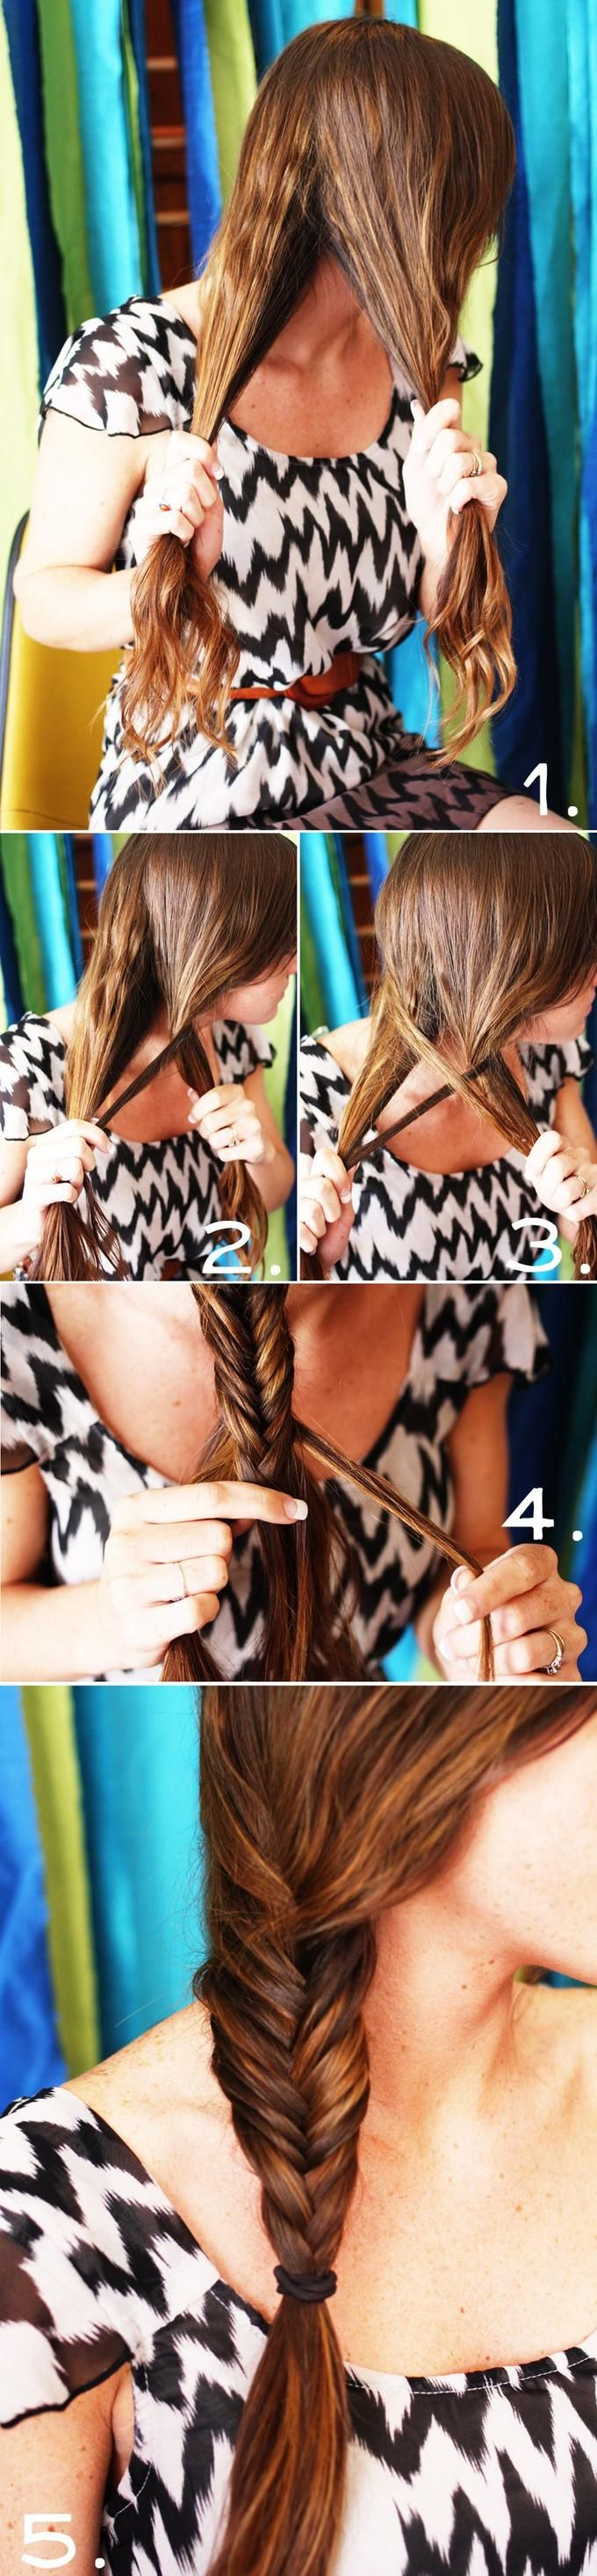 Fishtail Braid! @Sarah Chintomby Feldmann I still have to do this on you!